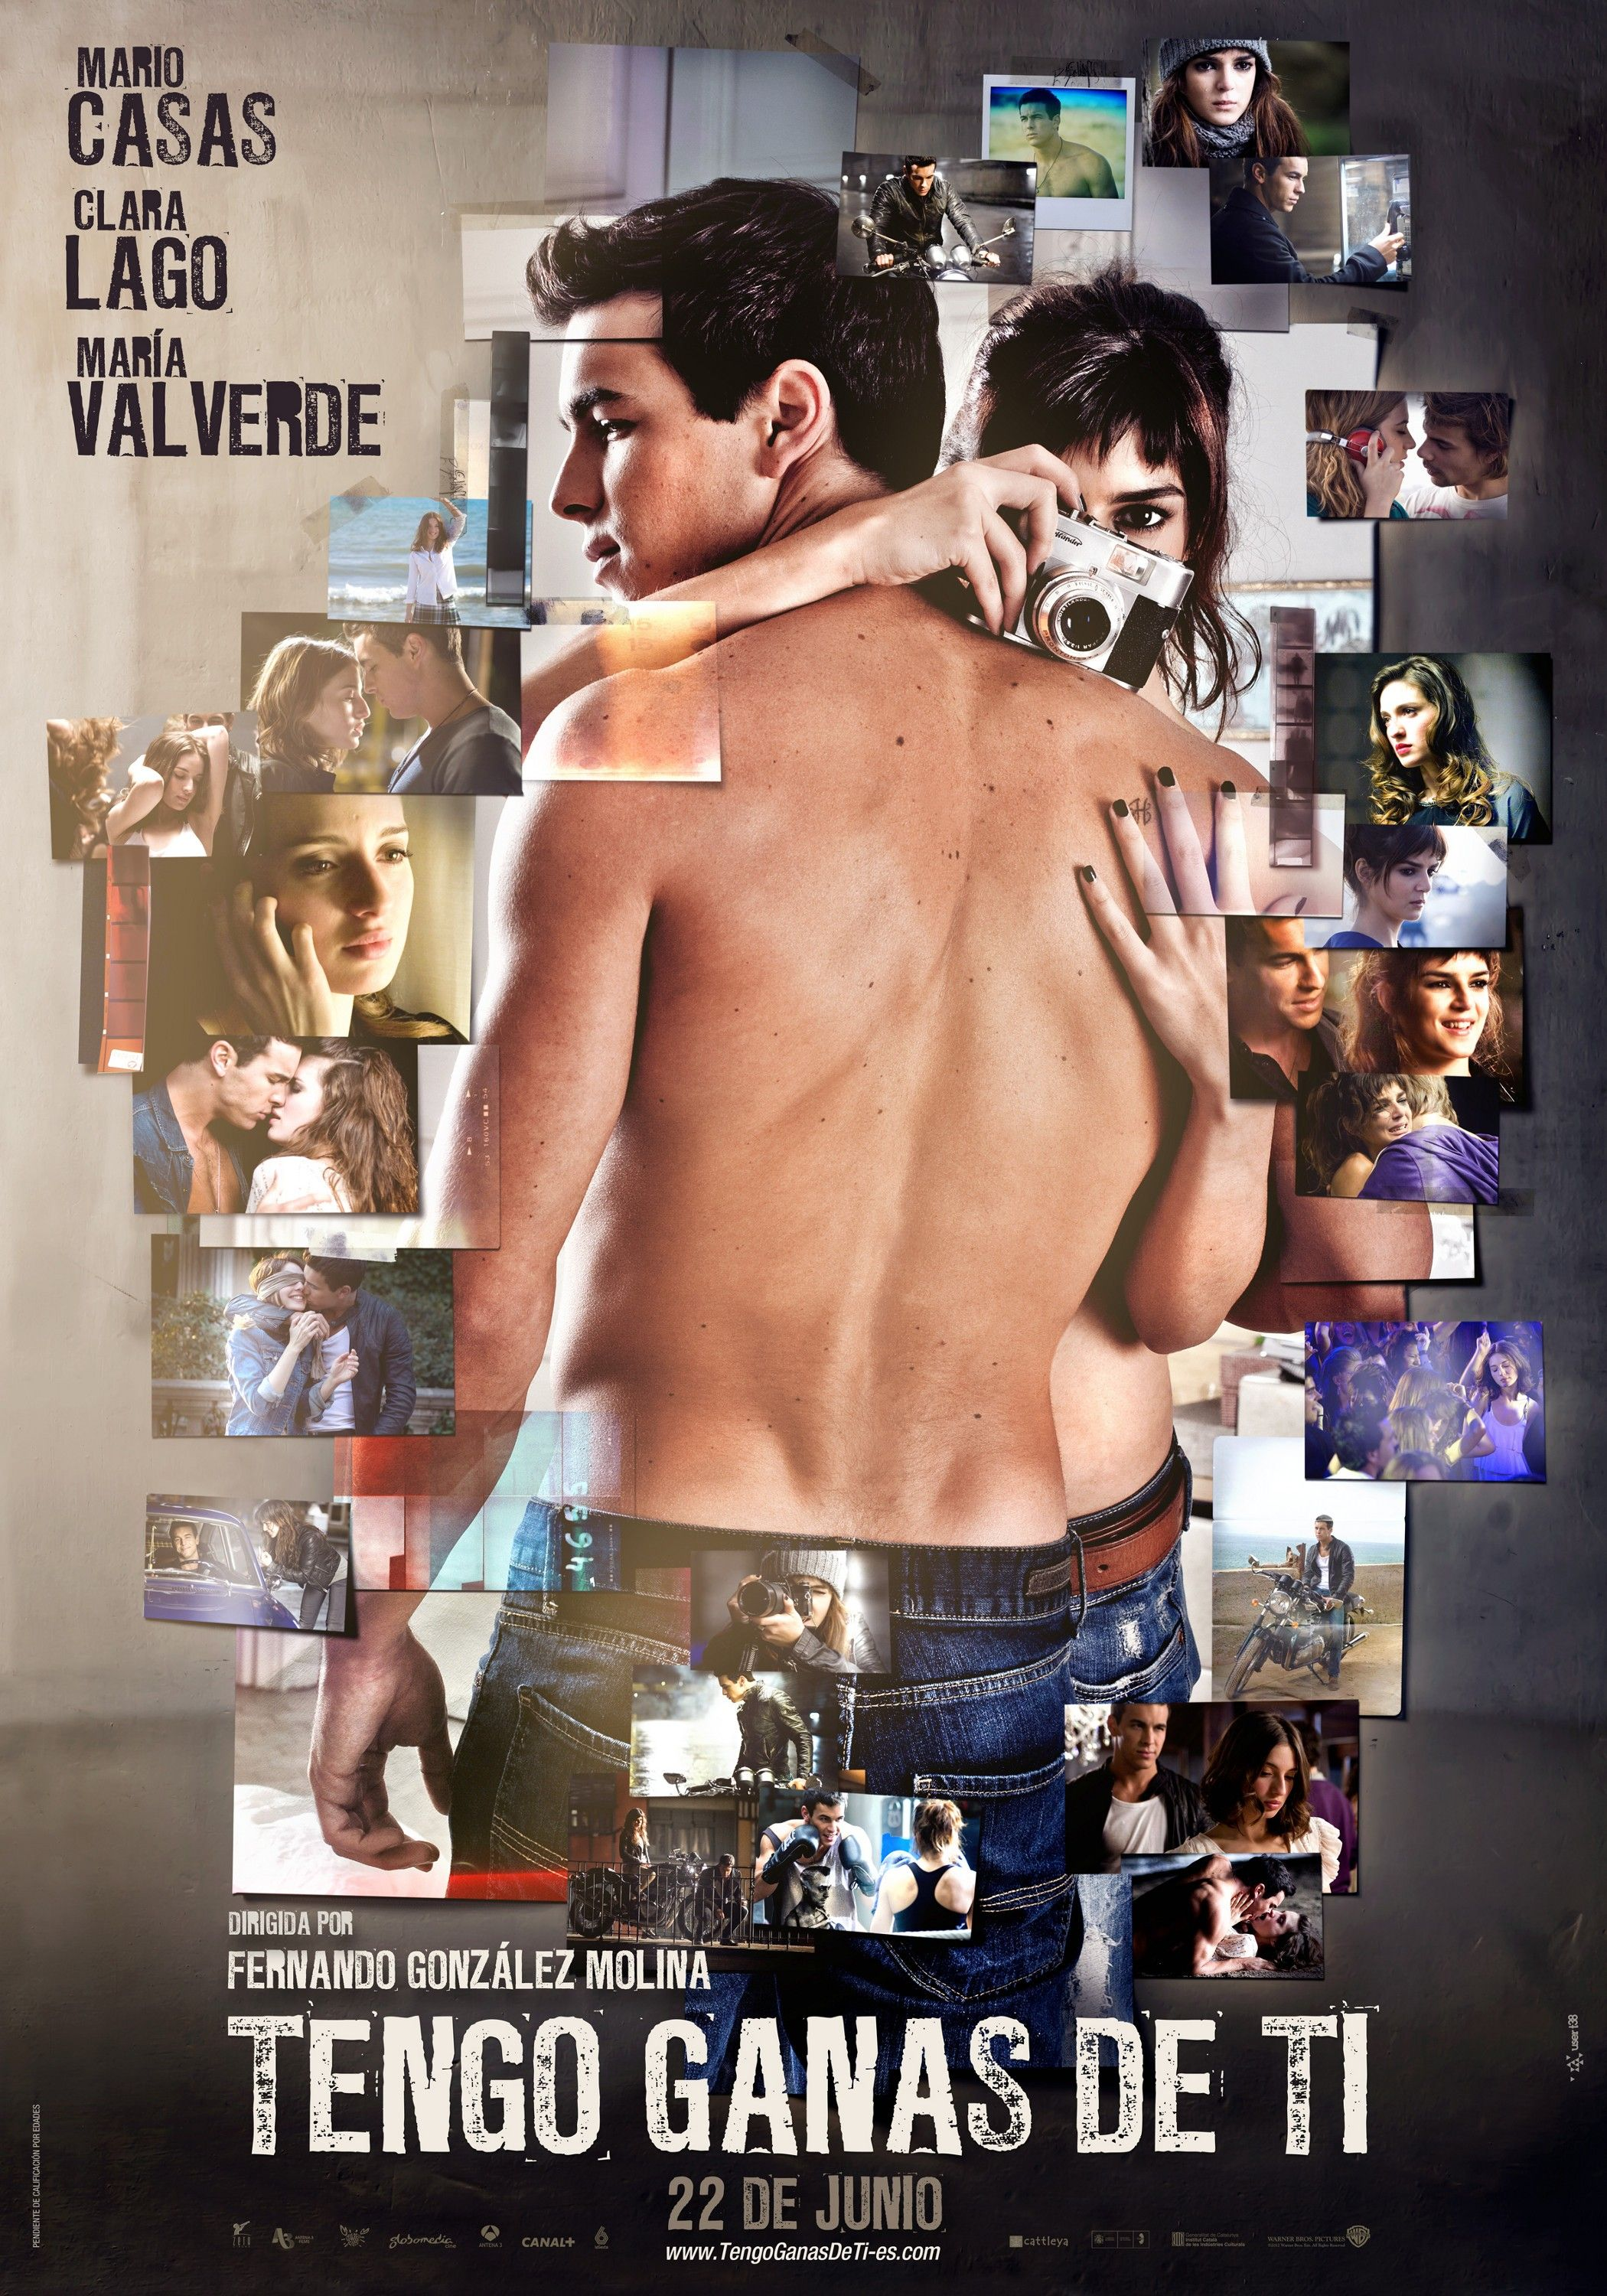 Tengo Ganas De Ti 2012 The Sequel Of Three Meters Above The Sky Starts With The Return Of H To His Hometow Romantic Comedy Movies Spanish Movies Film Books